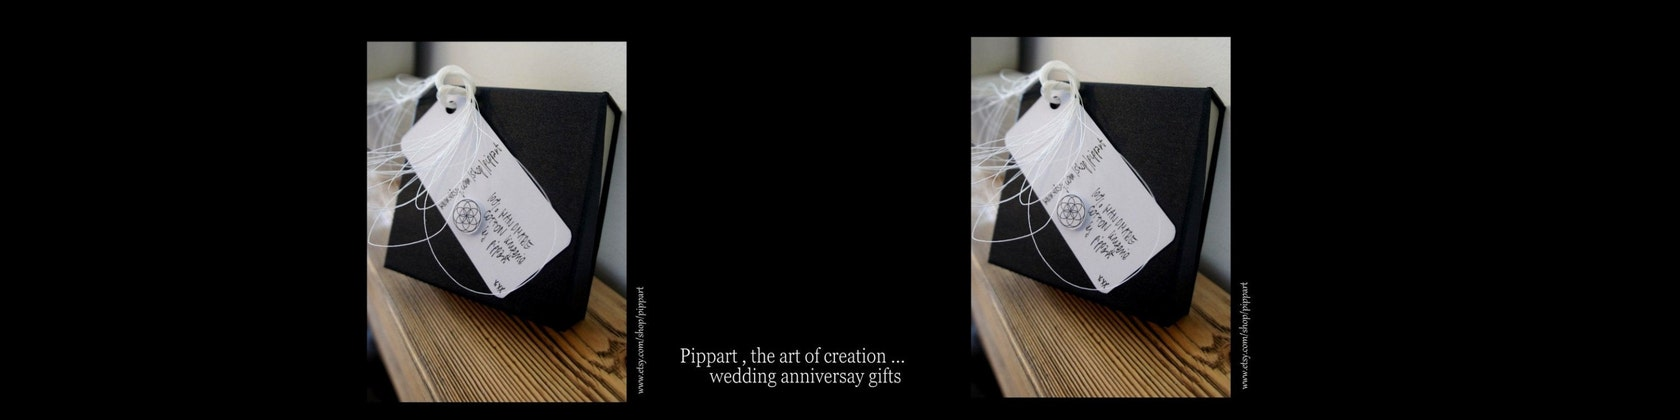 Wedding anniversary gift shop handmade lingerie by pippart